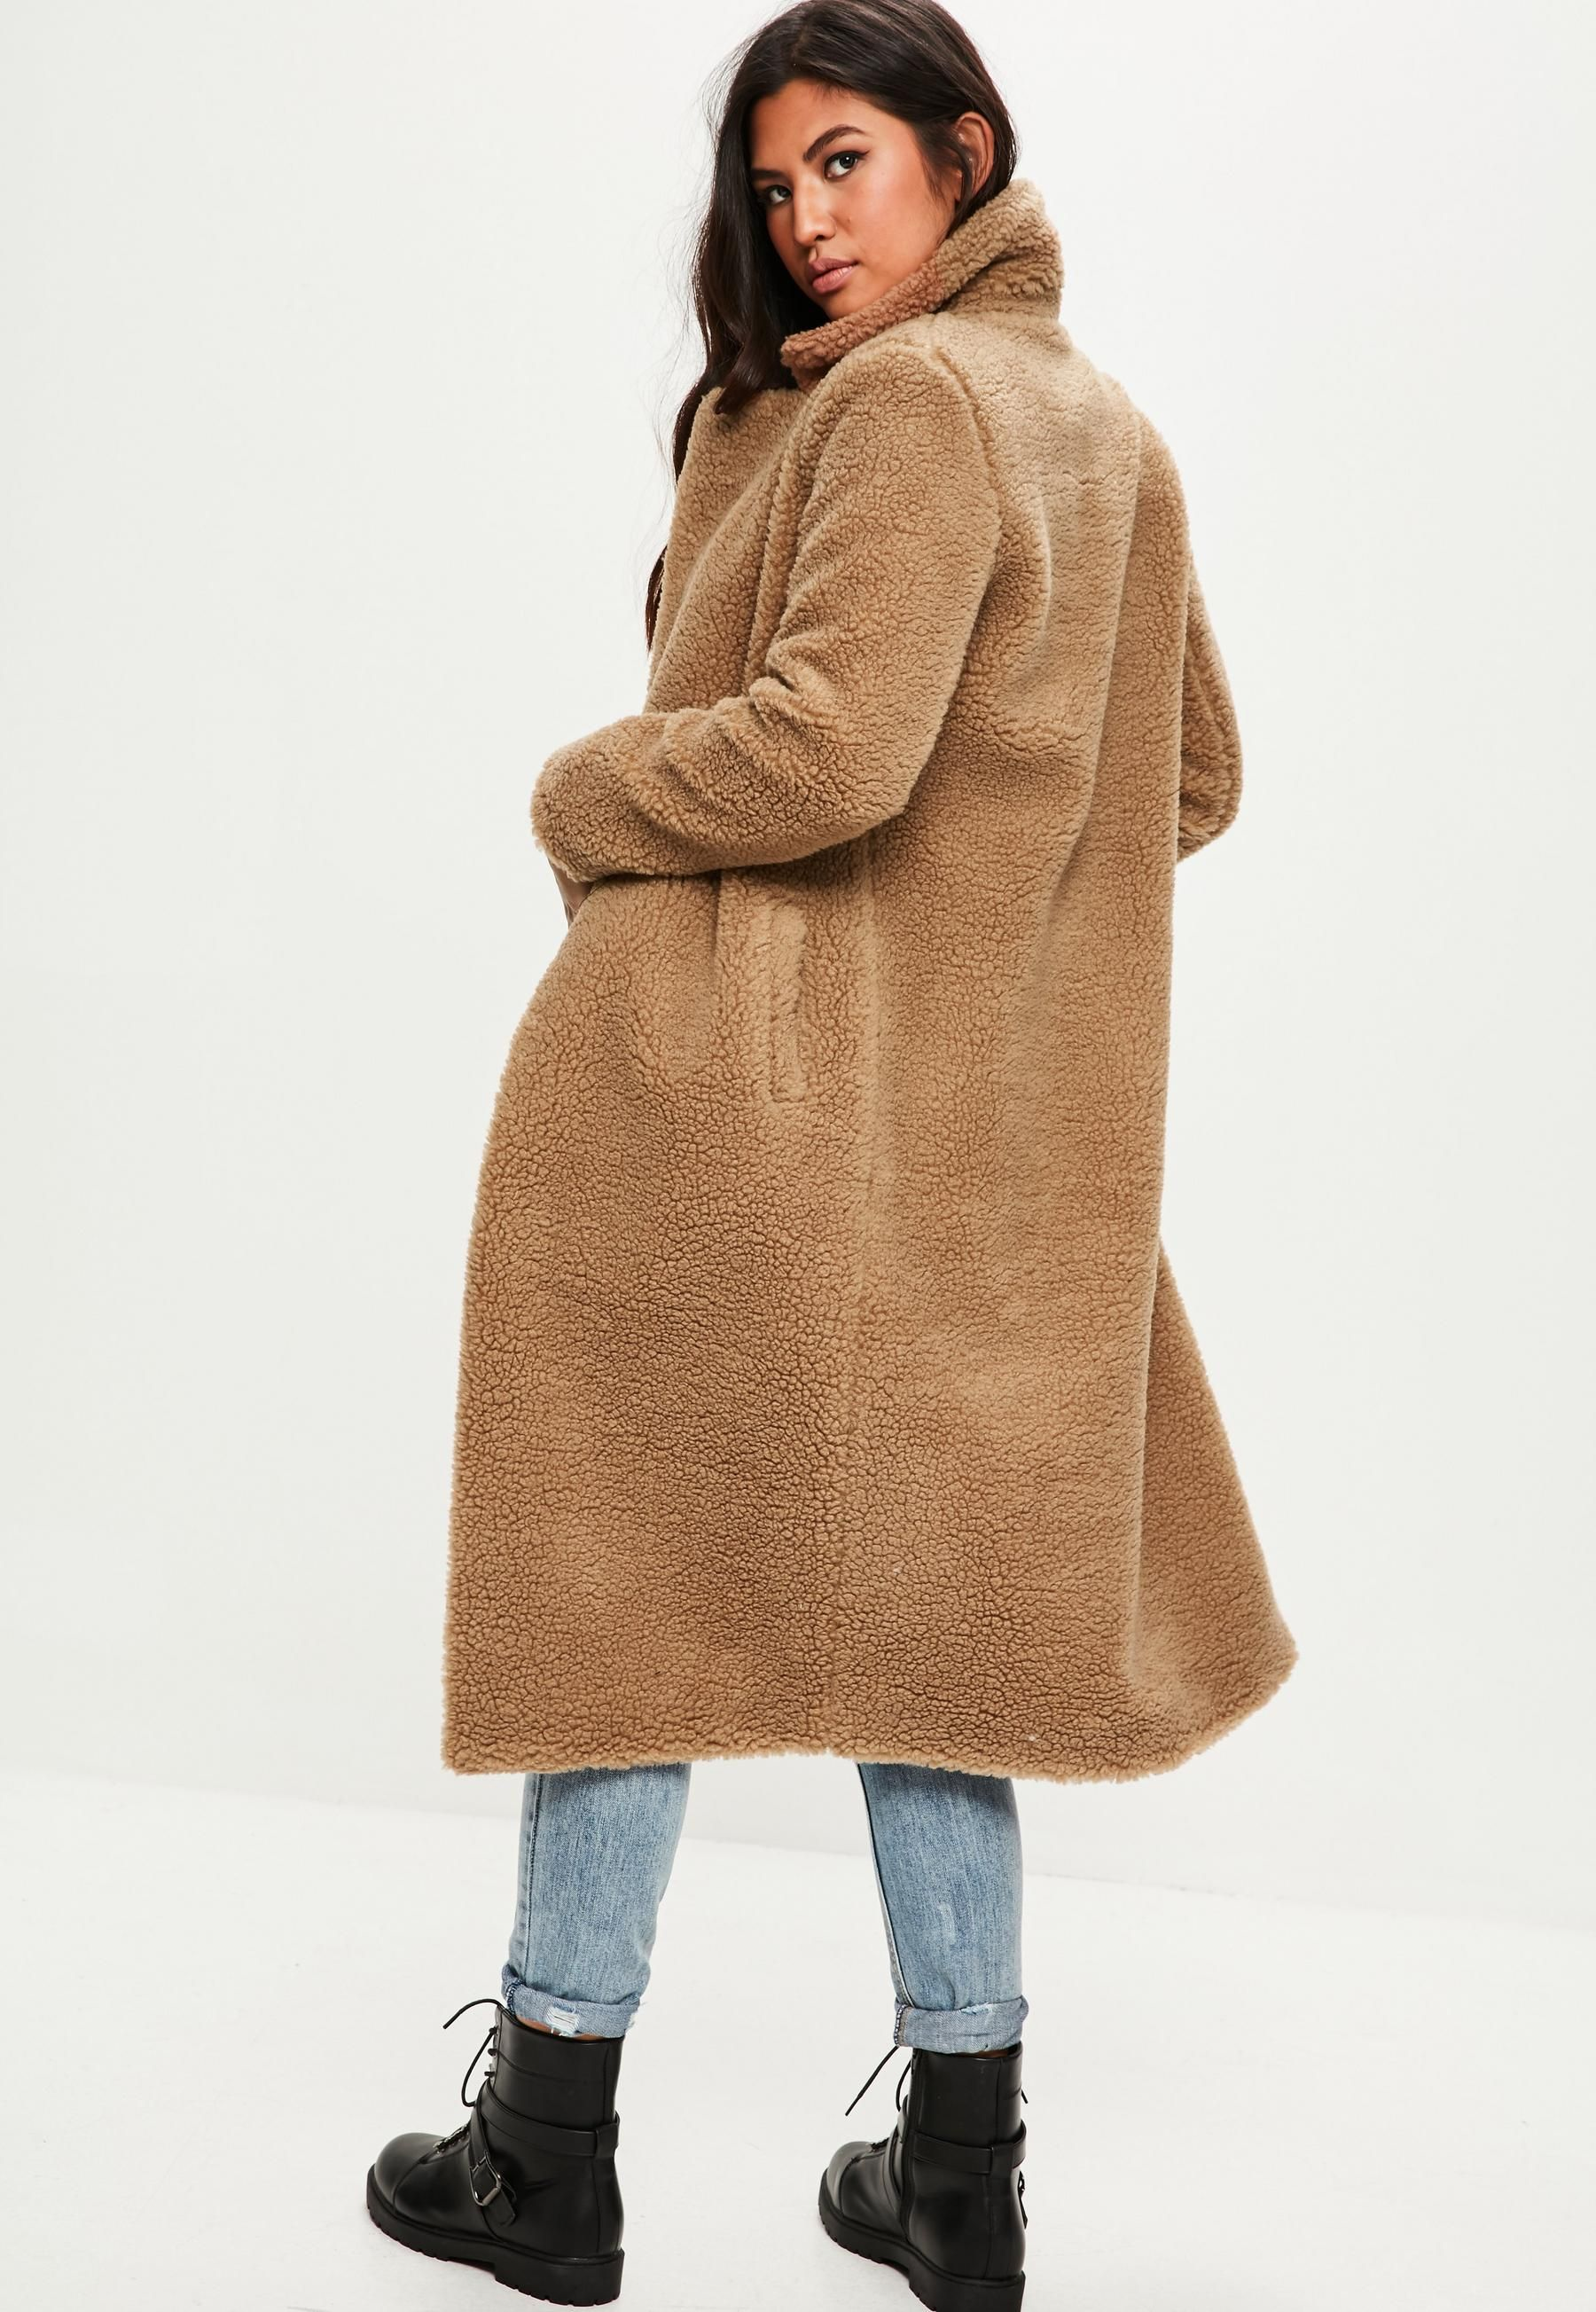 enjoy bottom price sale online soft and light Tan Borg Teddy Coat | Missguided | Teddy Bear Coat I want in ...